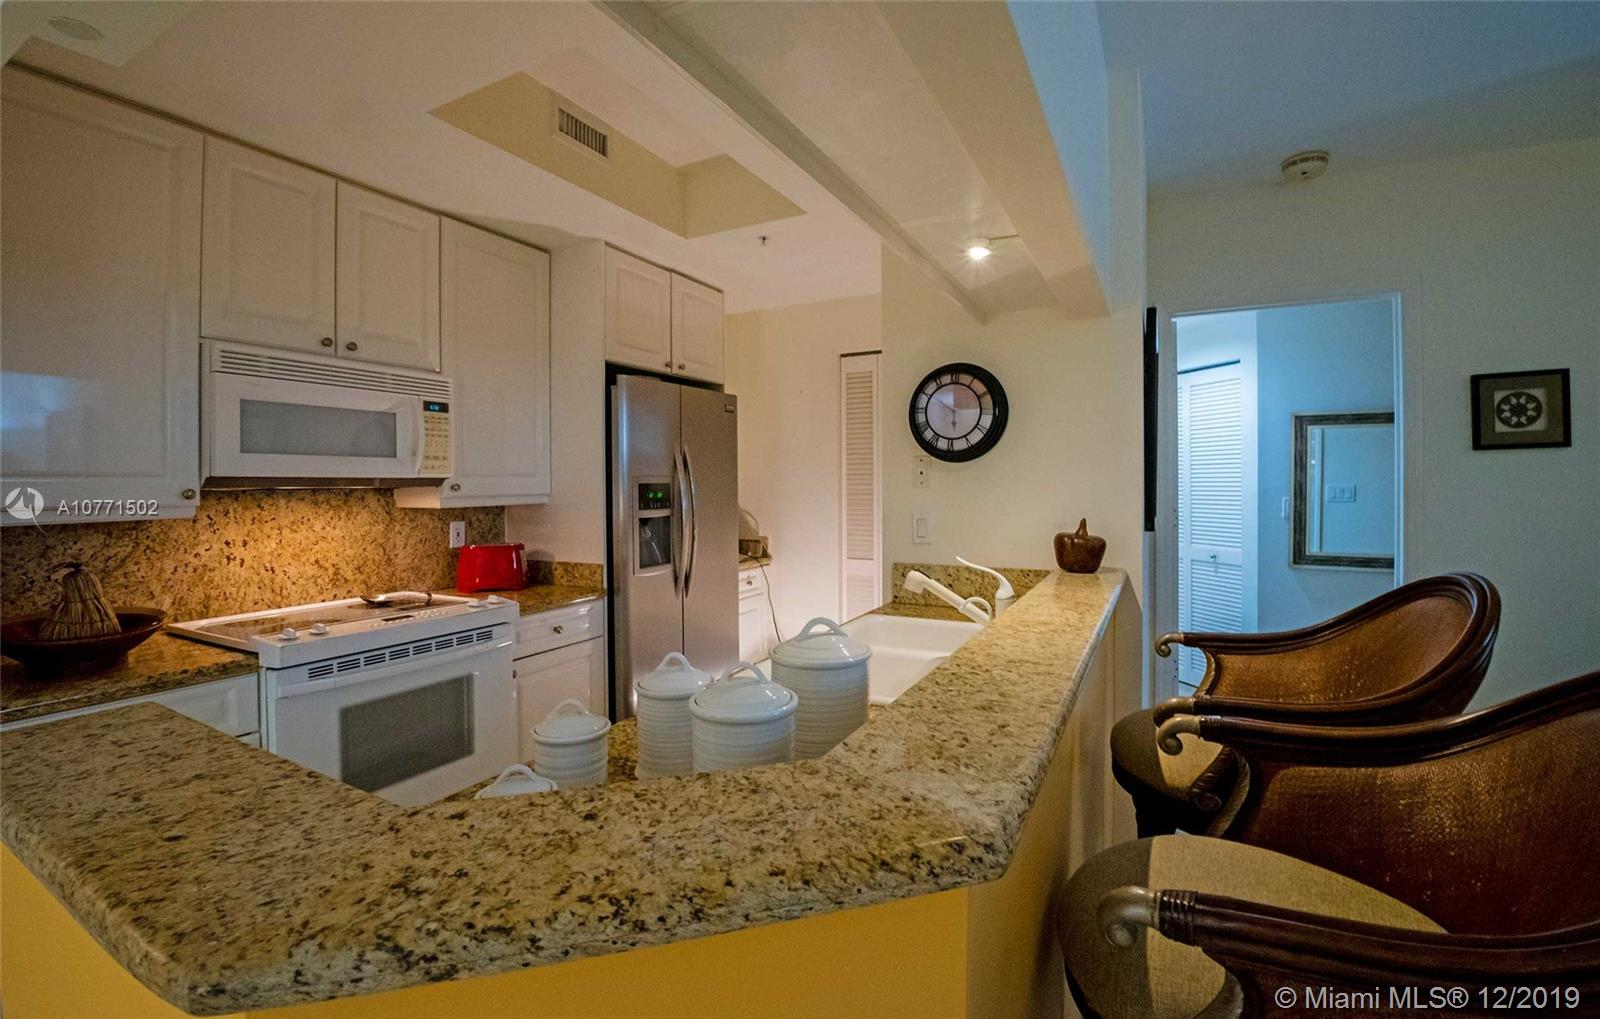 Photo of Three Tequesta Point Apt 3403